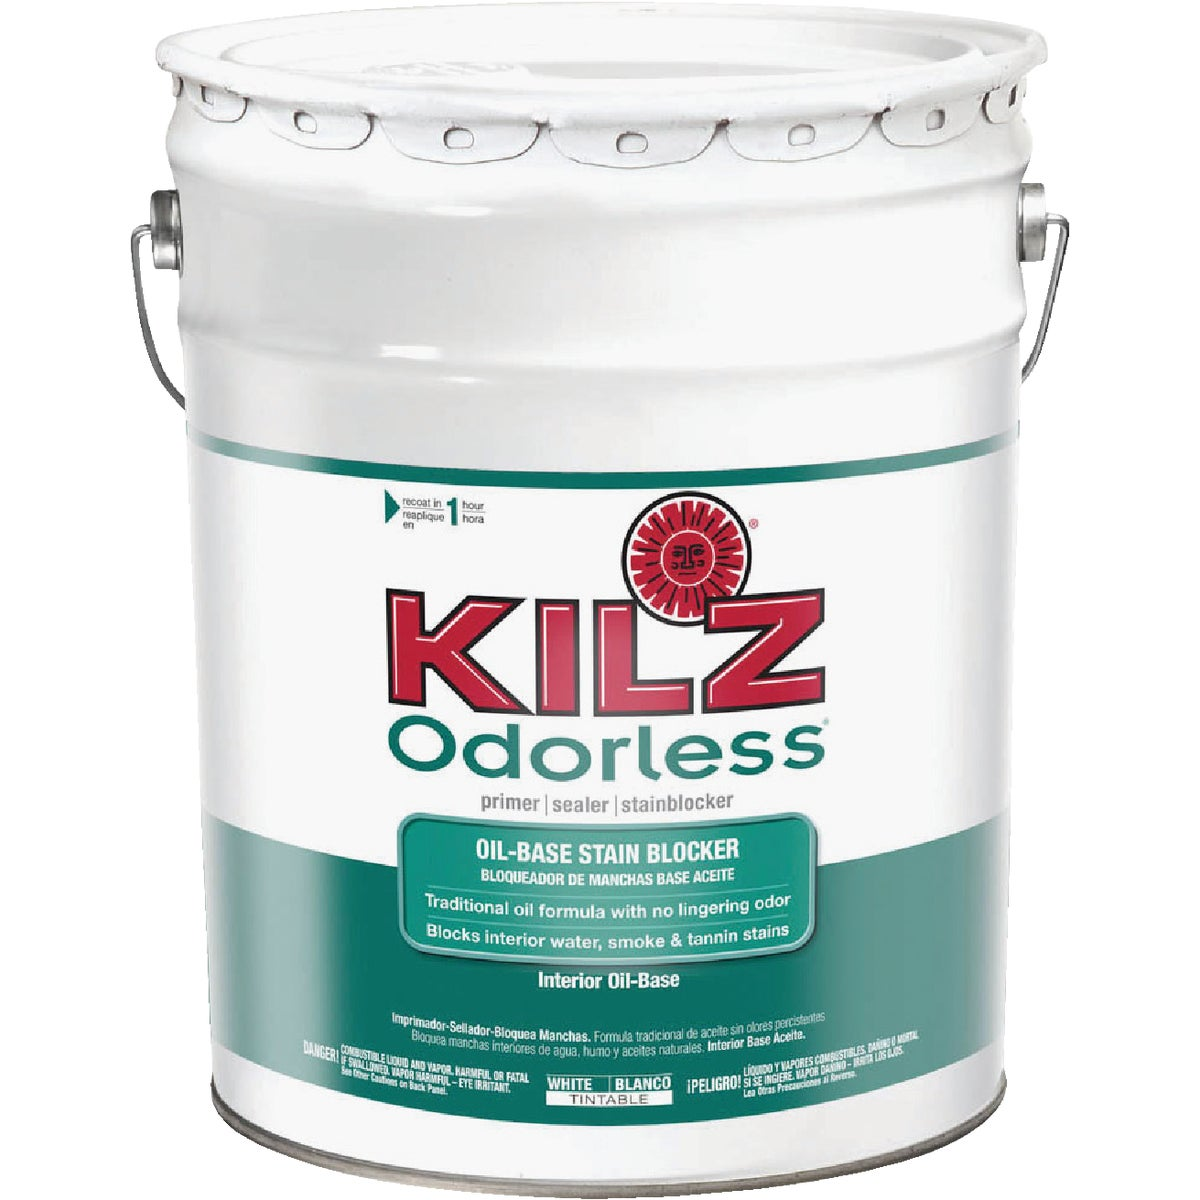 KILZ INT ODORLESS PRIMER - 10040 by Masterchem